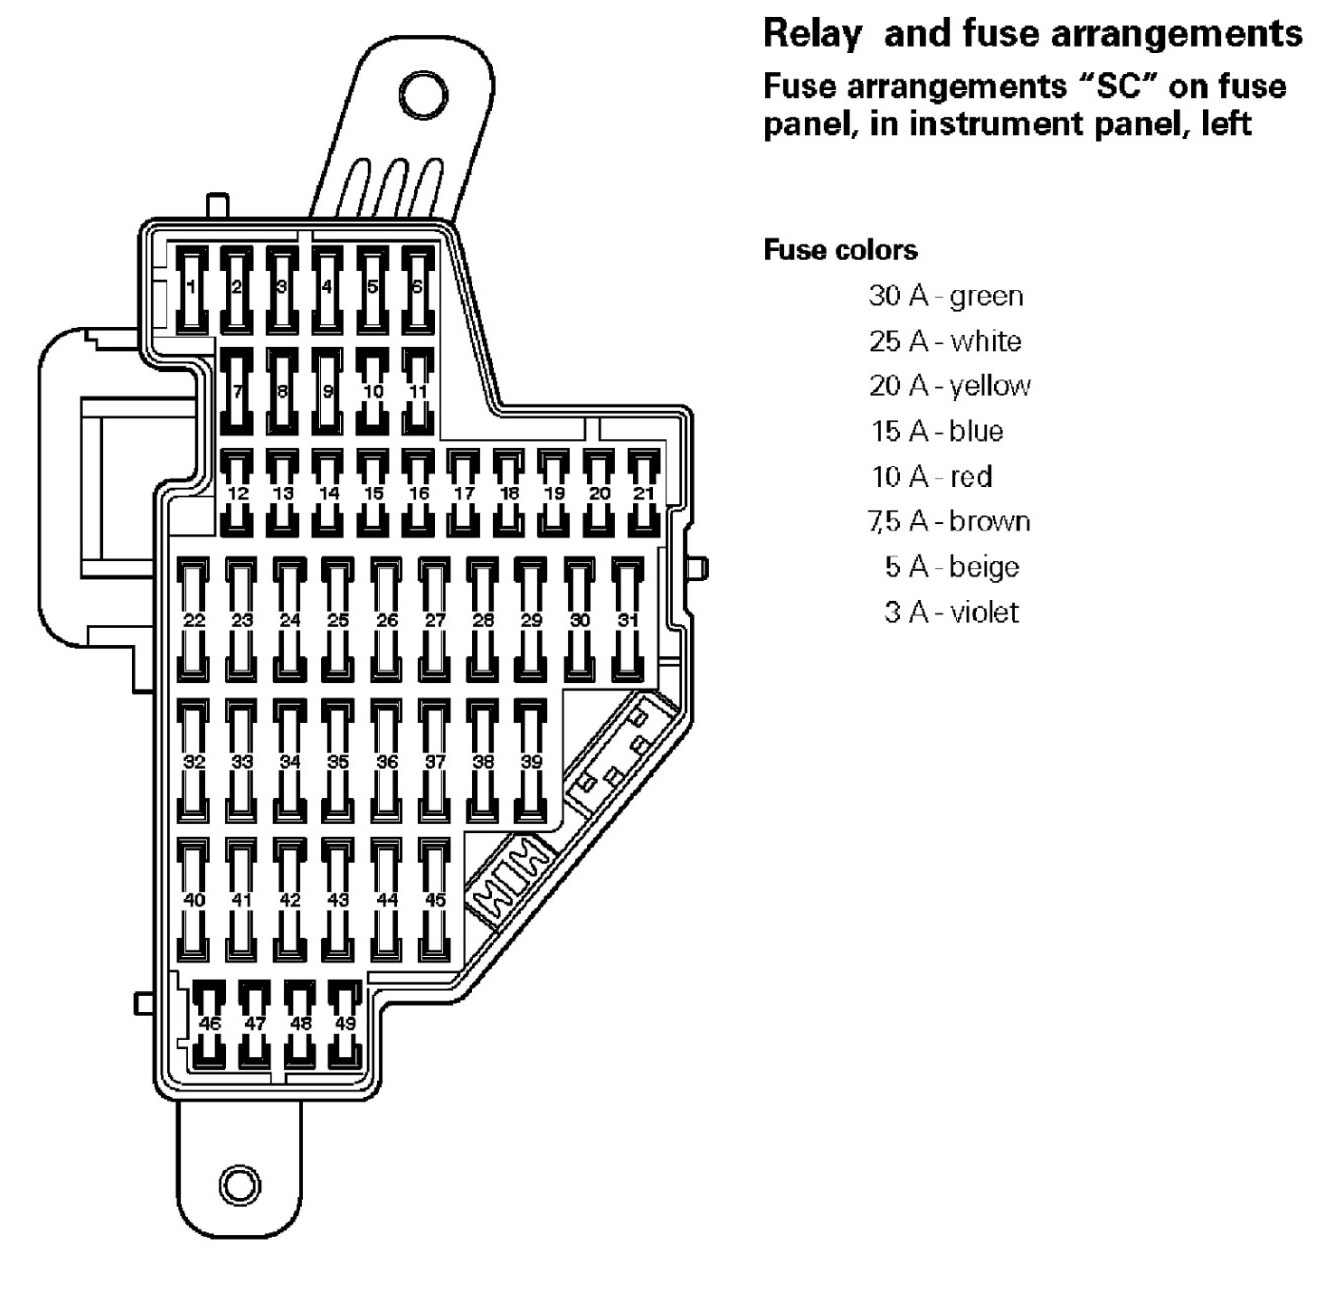 1996 vw jettum fuse box diagram